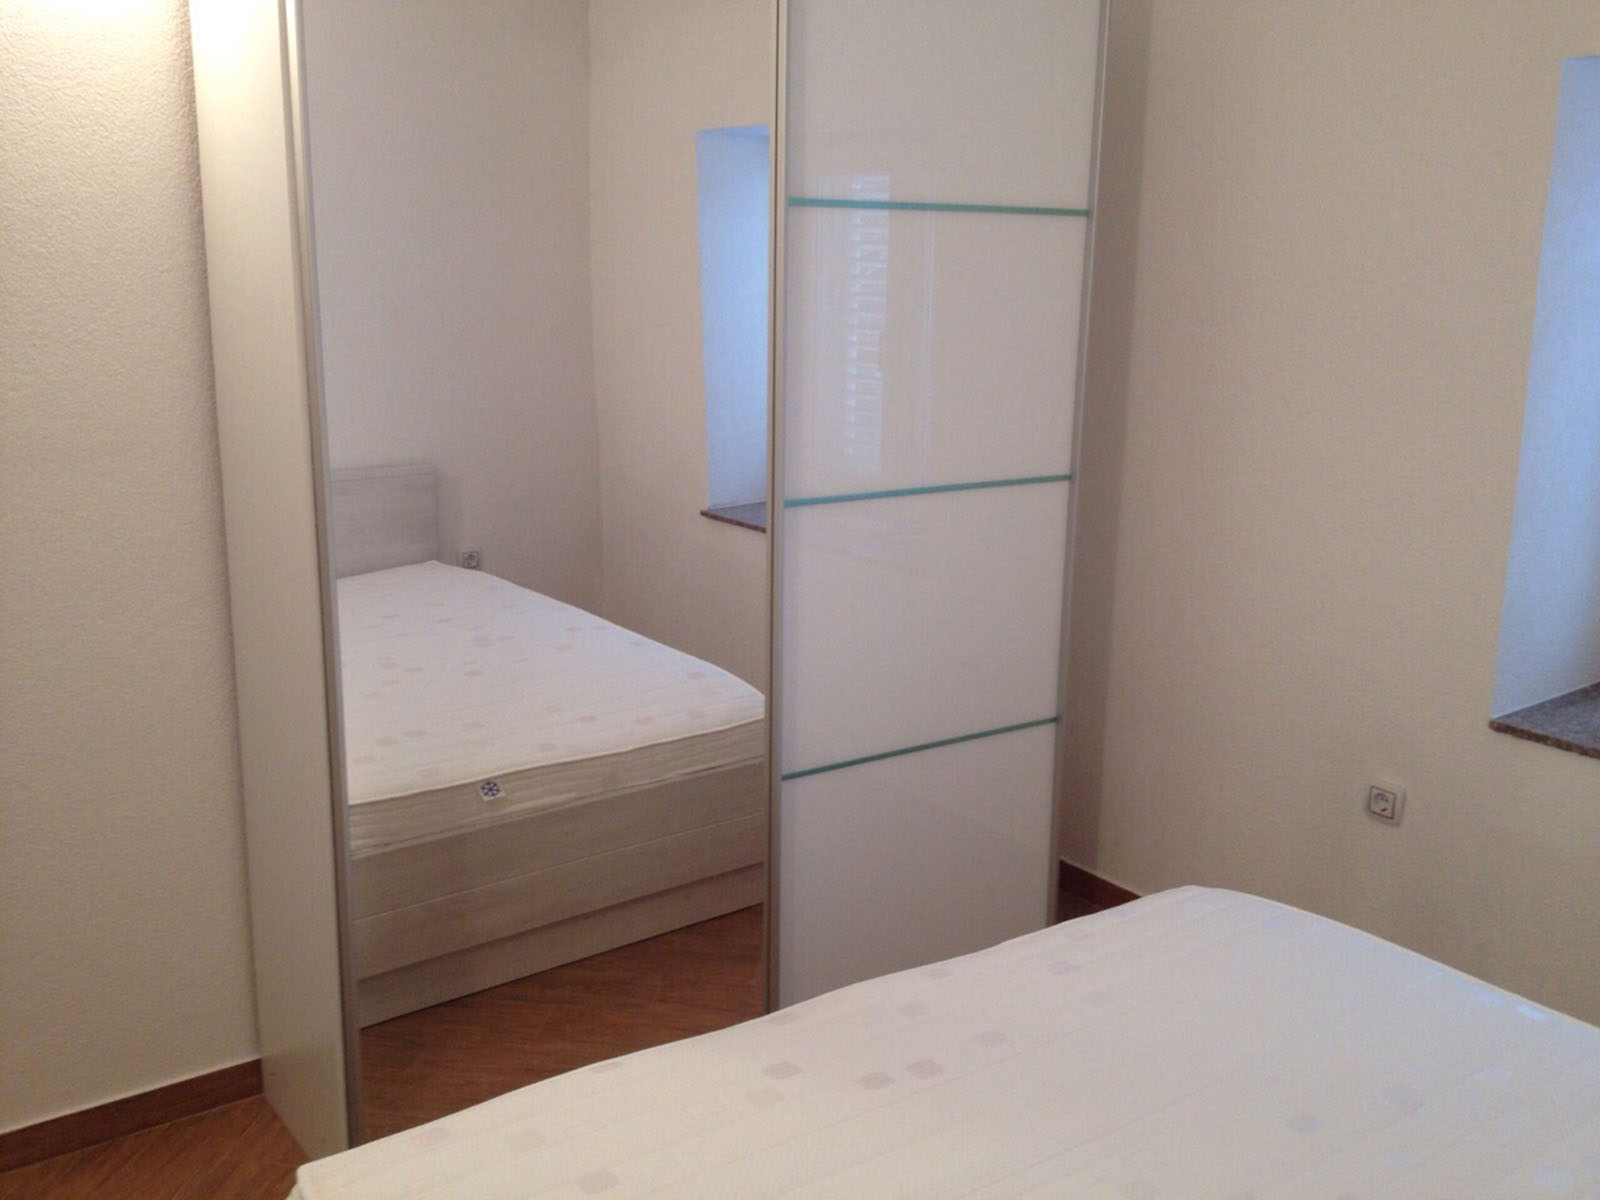 apartments4U-croatia-dugi-otok-indoor-15